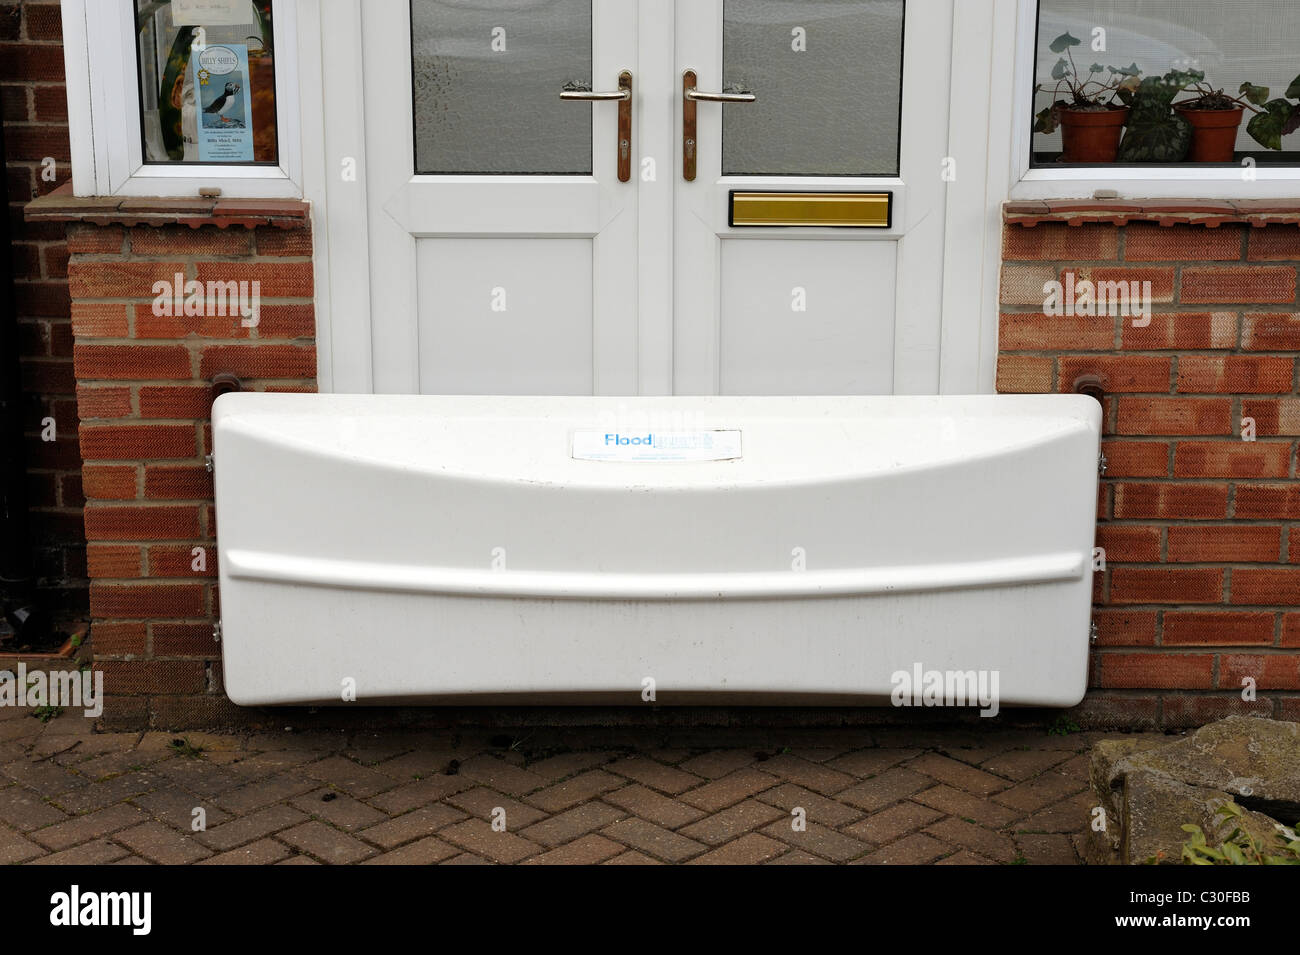 Flood defence barrier on a house - Stock Image